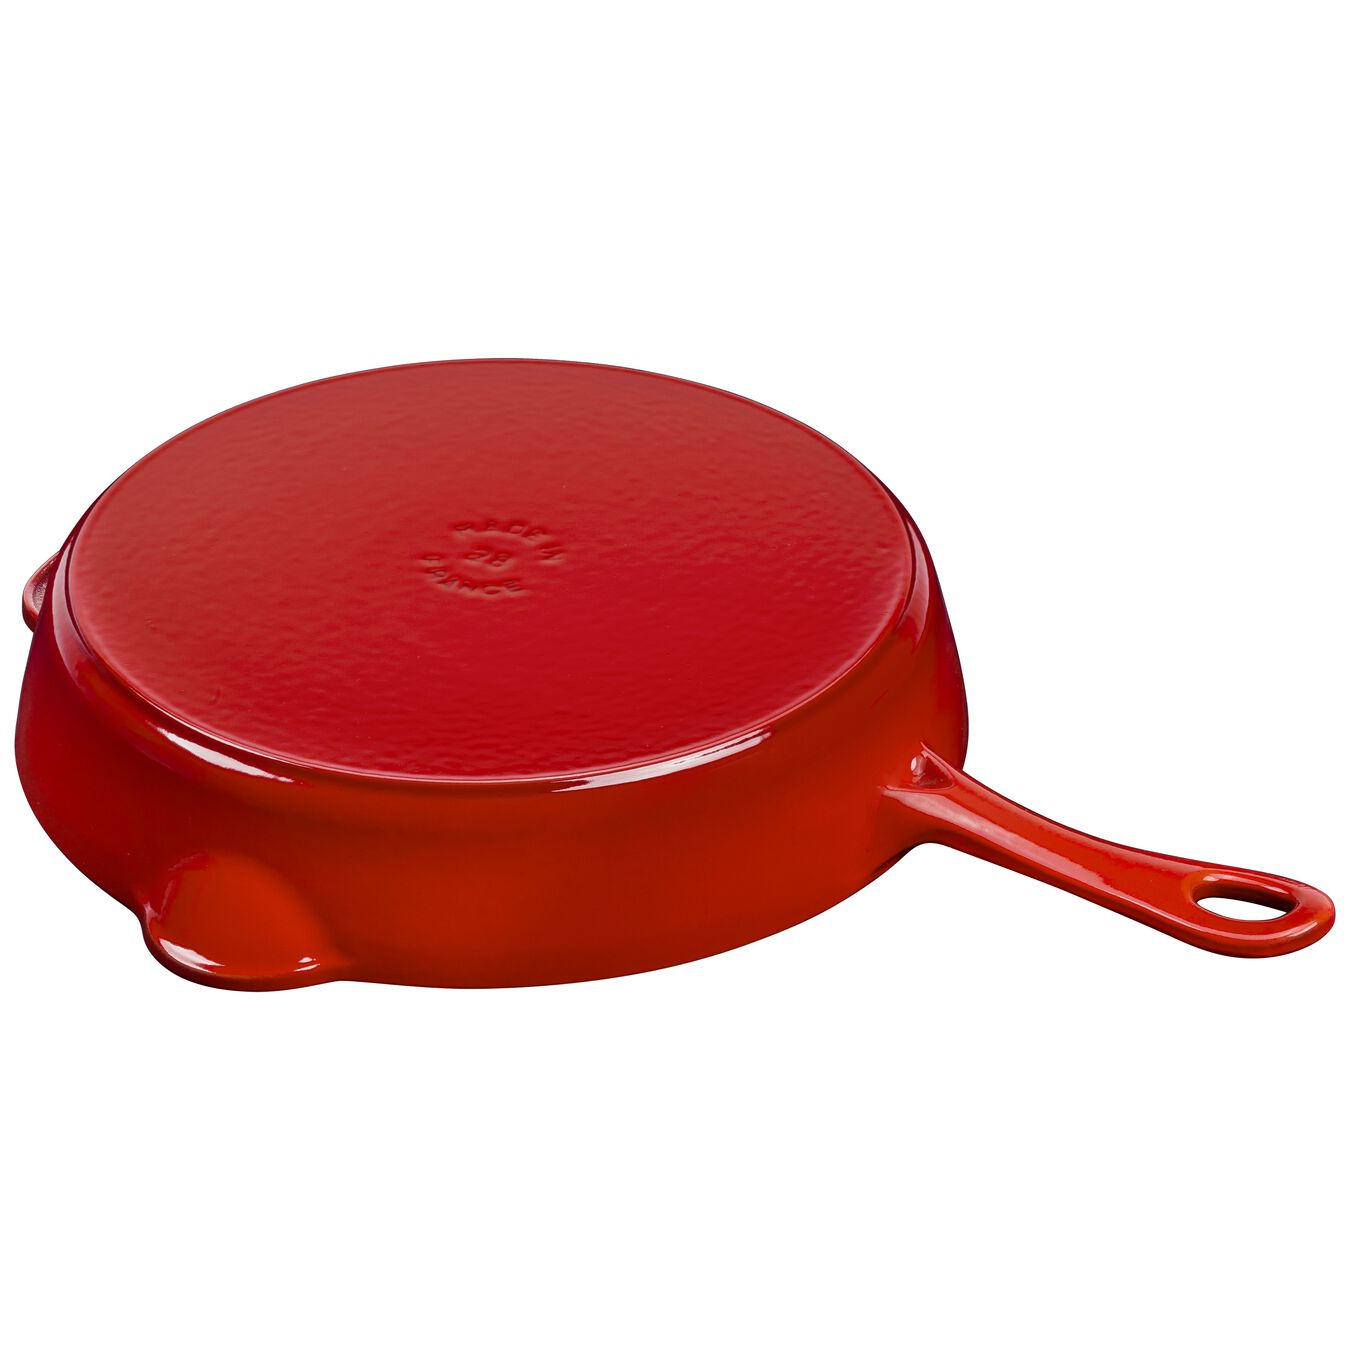 11-inch, Traditional Deep Skillet, cherry,,large 5